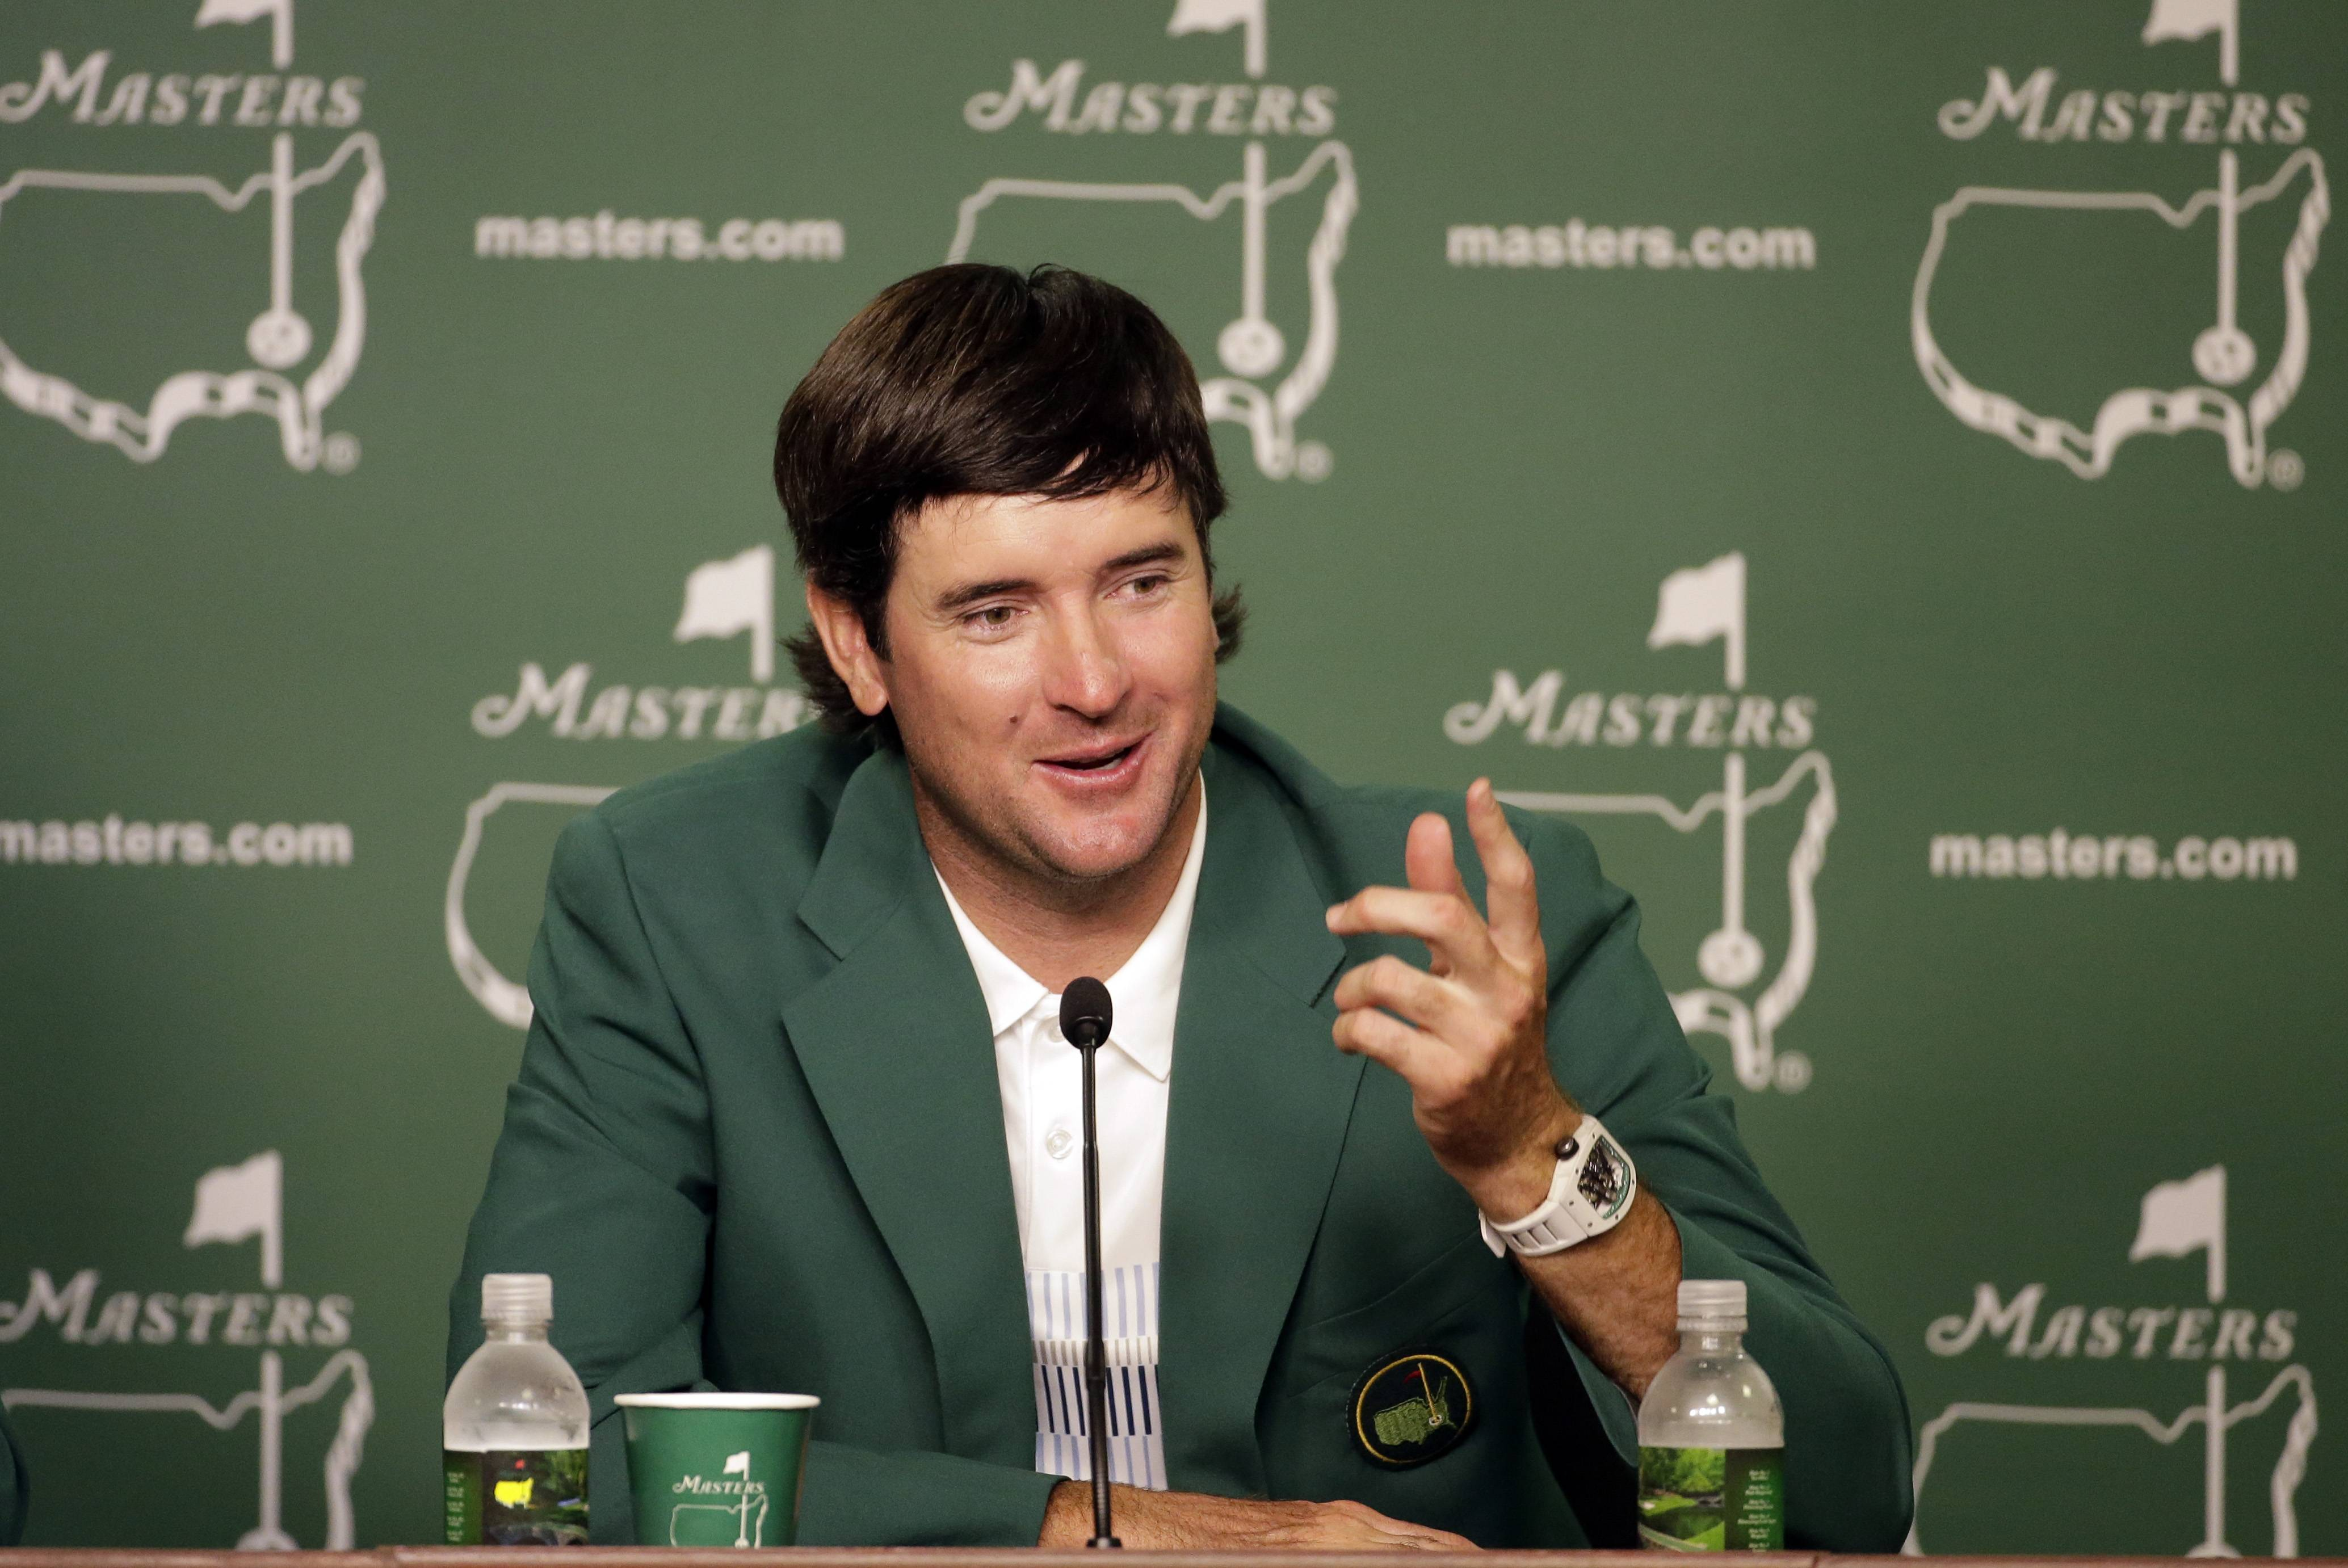 Bubba Watson, speaks during a press conference wearing his green jacket after winning the Masters golf tournament Sunday in Augusta, Ga.